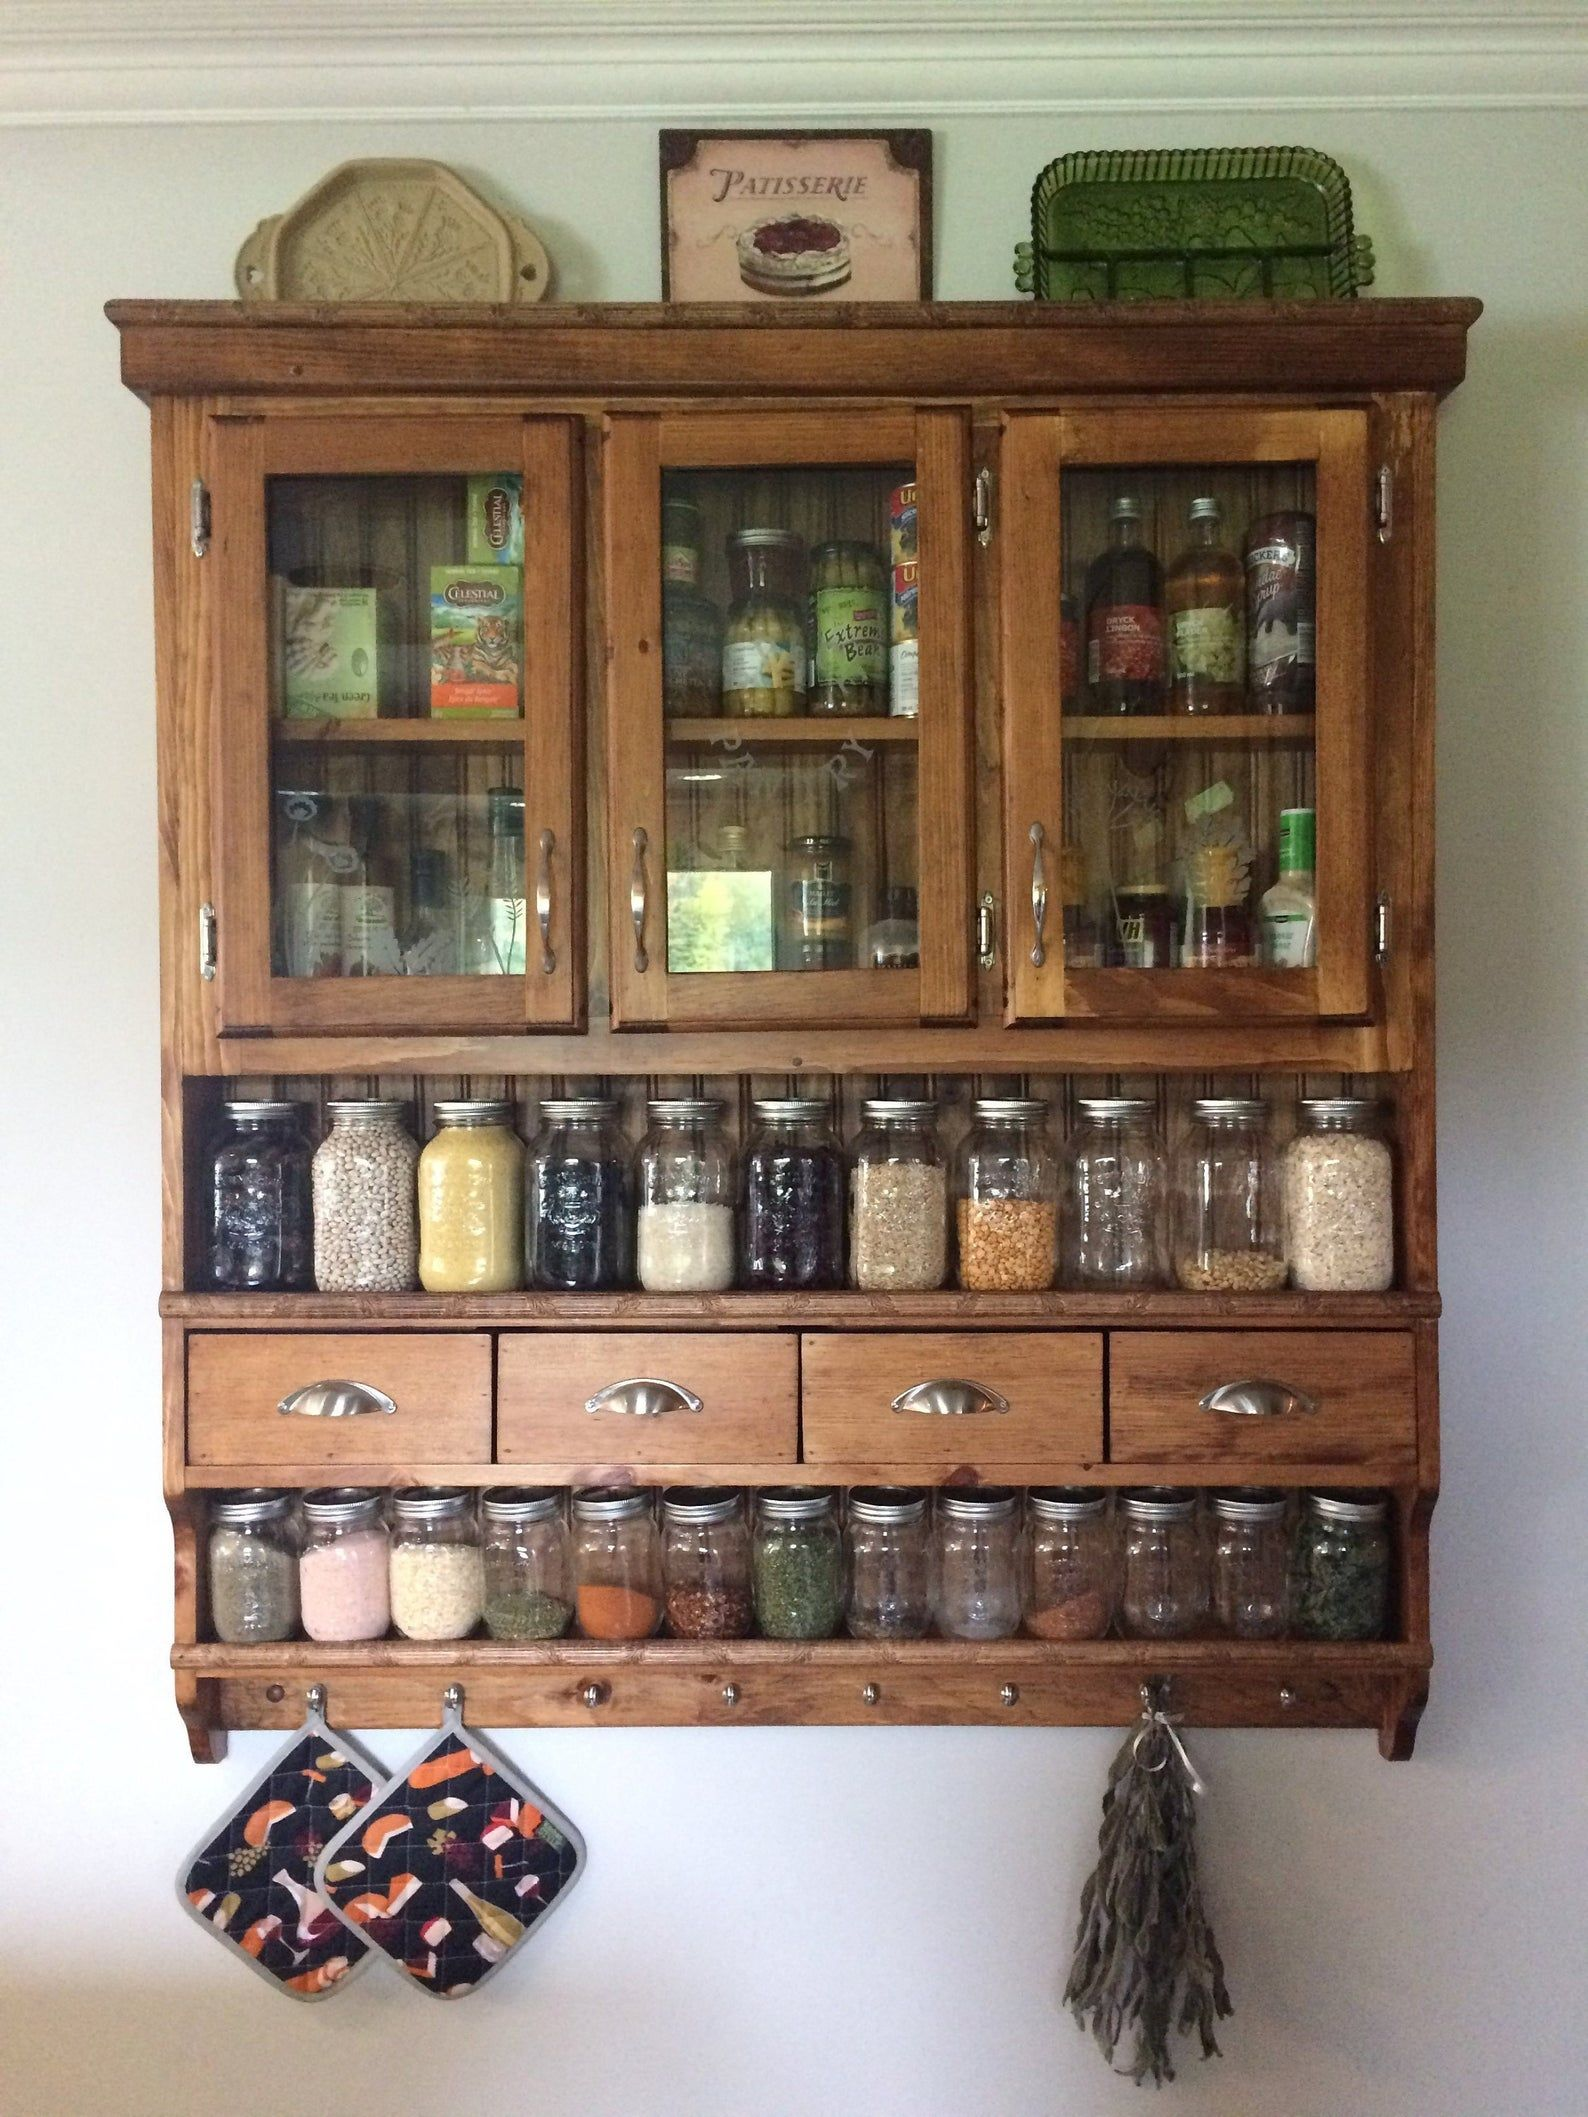 Custom Spice Pantry Spice Rack Collectors Display With Etsy Small Kitchen Decor Home Decor Home Diy